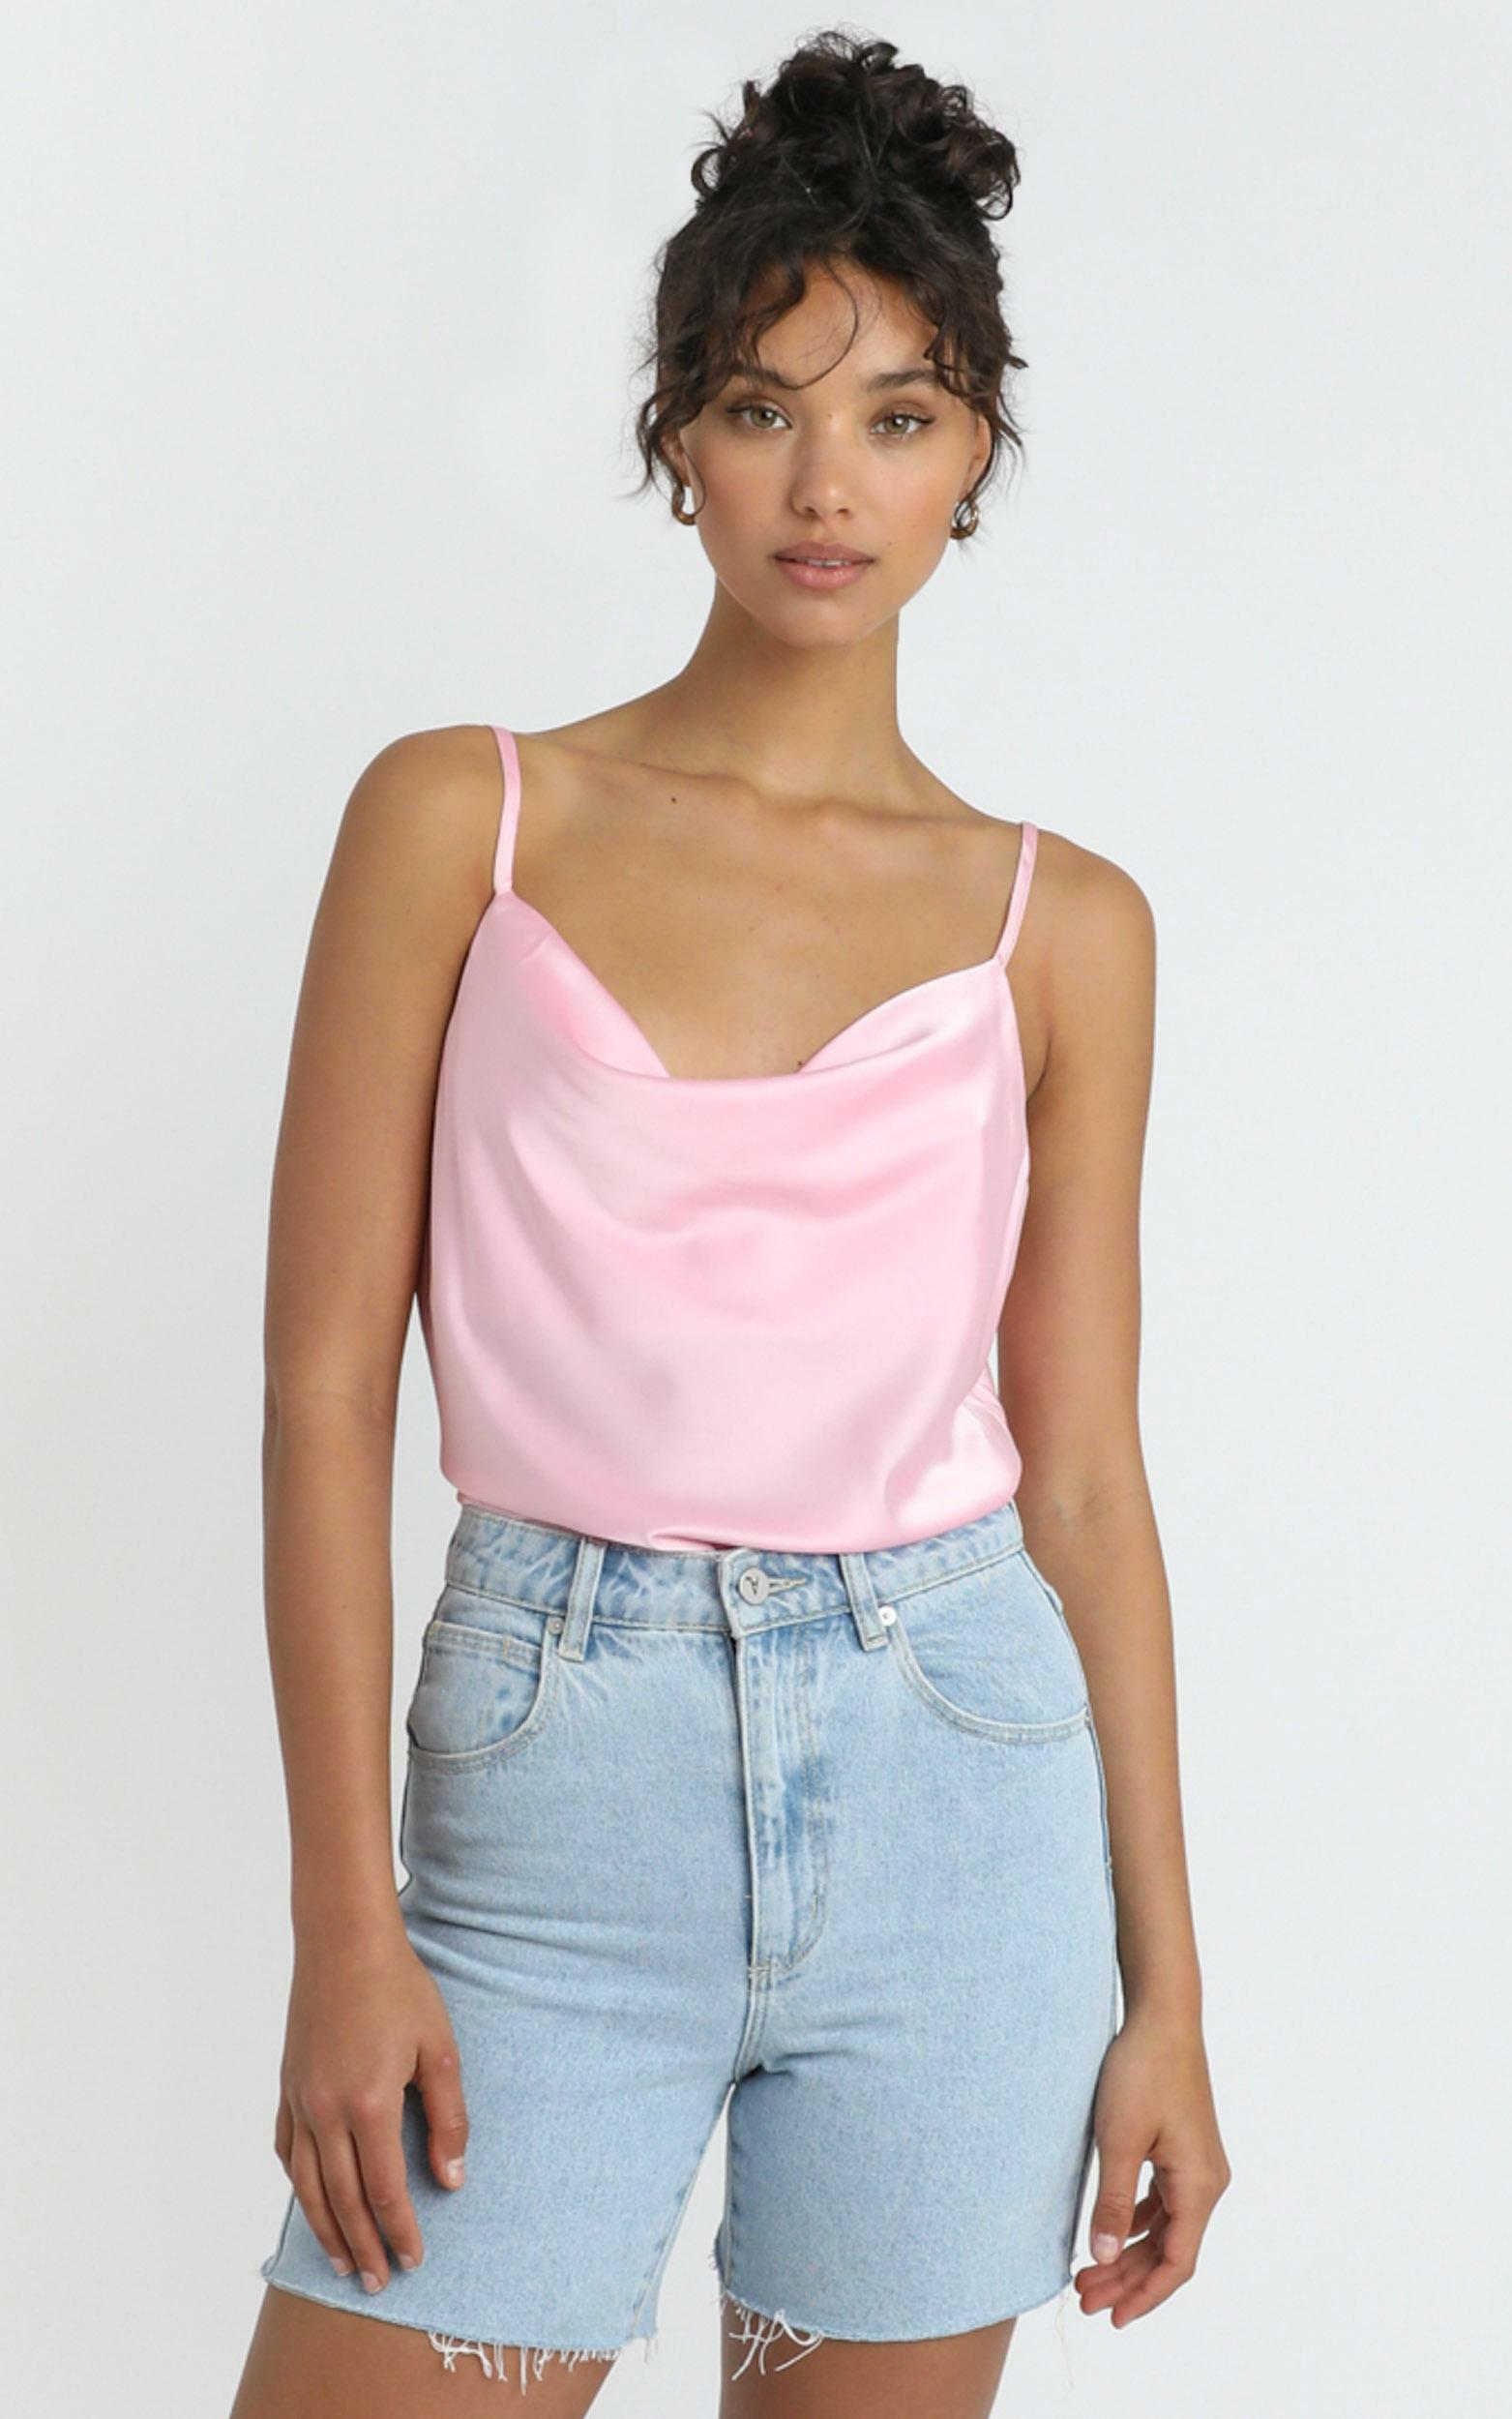 Straight Line Top in soft pink - 4 (XXS), PNK1, hi-res image number null